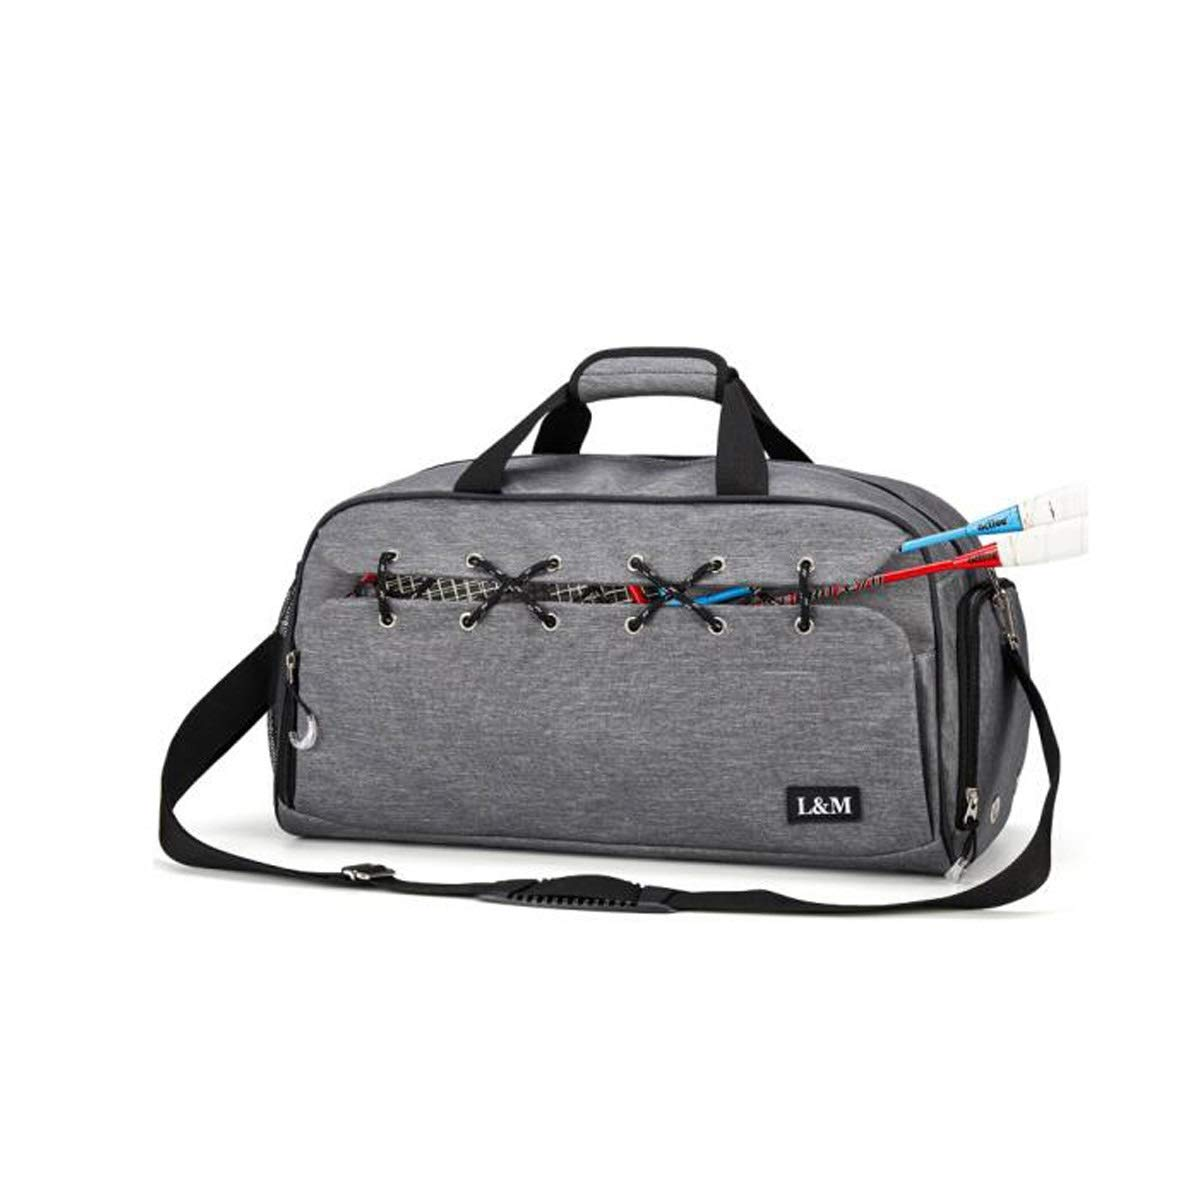 Male and Female Training Bag Sports and Leisure Bag Black Size: 502527cm Color : Gray Shoulder Bag Sports Bag Wet and Dry Separation Large Capacity Fitness Bag